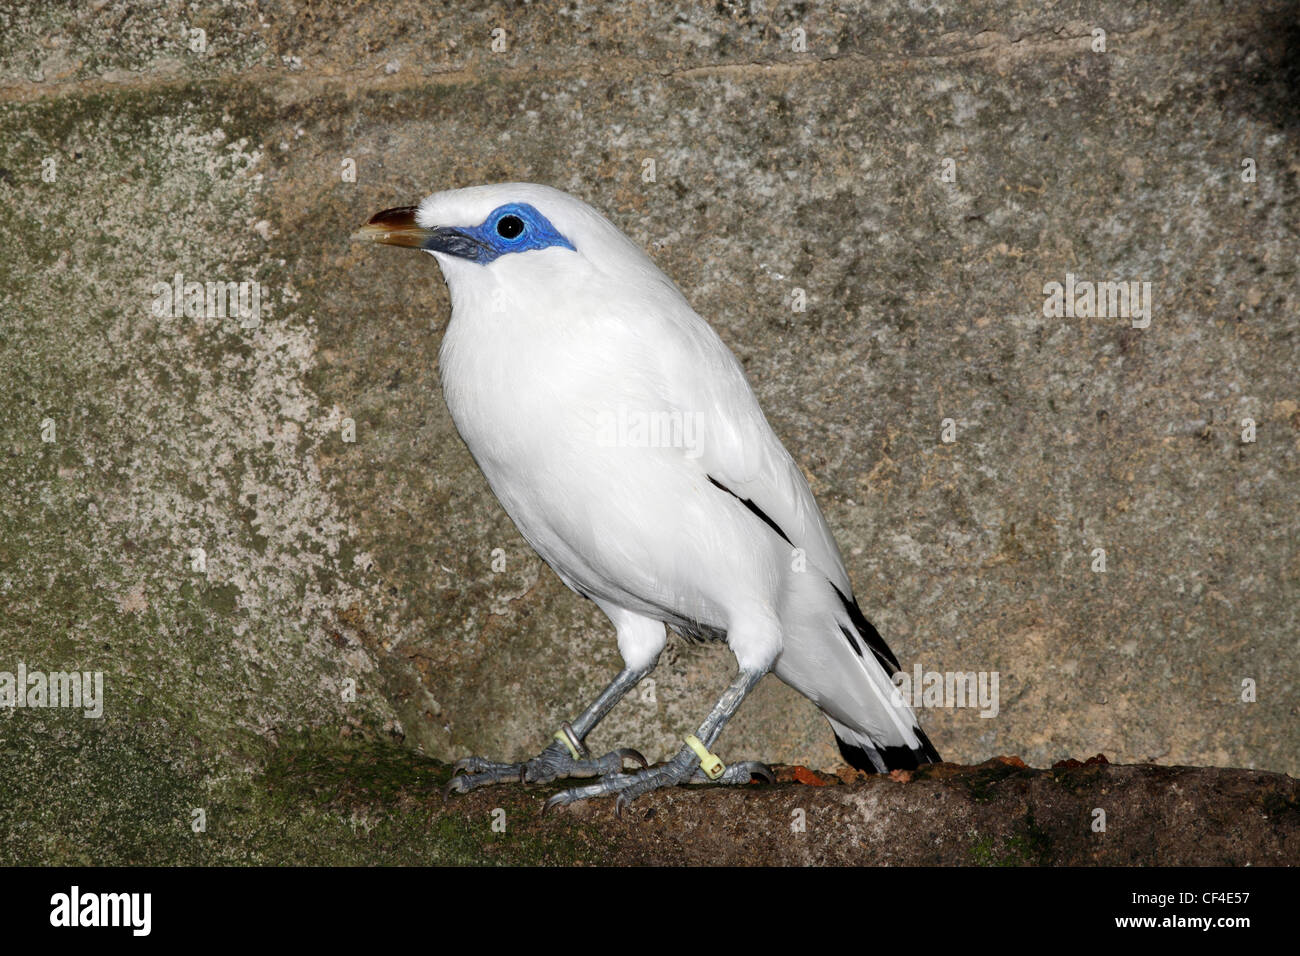 Bali Starling, Leucopsar rothschildi, also known as the Bali Mynah, is endemic to the island of Bali and is critically - Stock Image